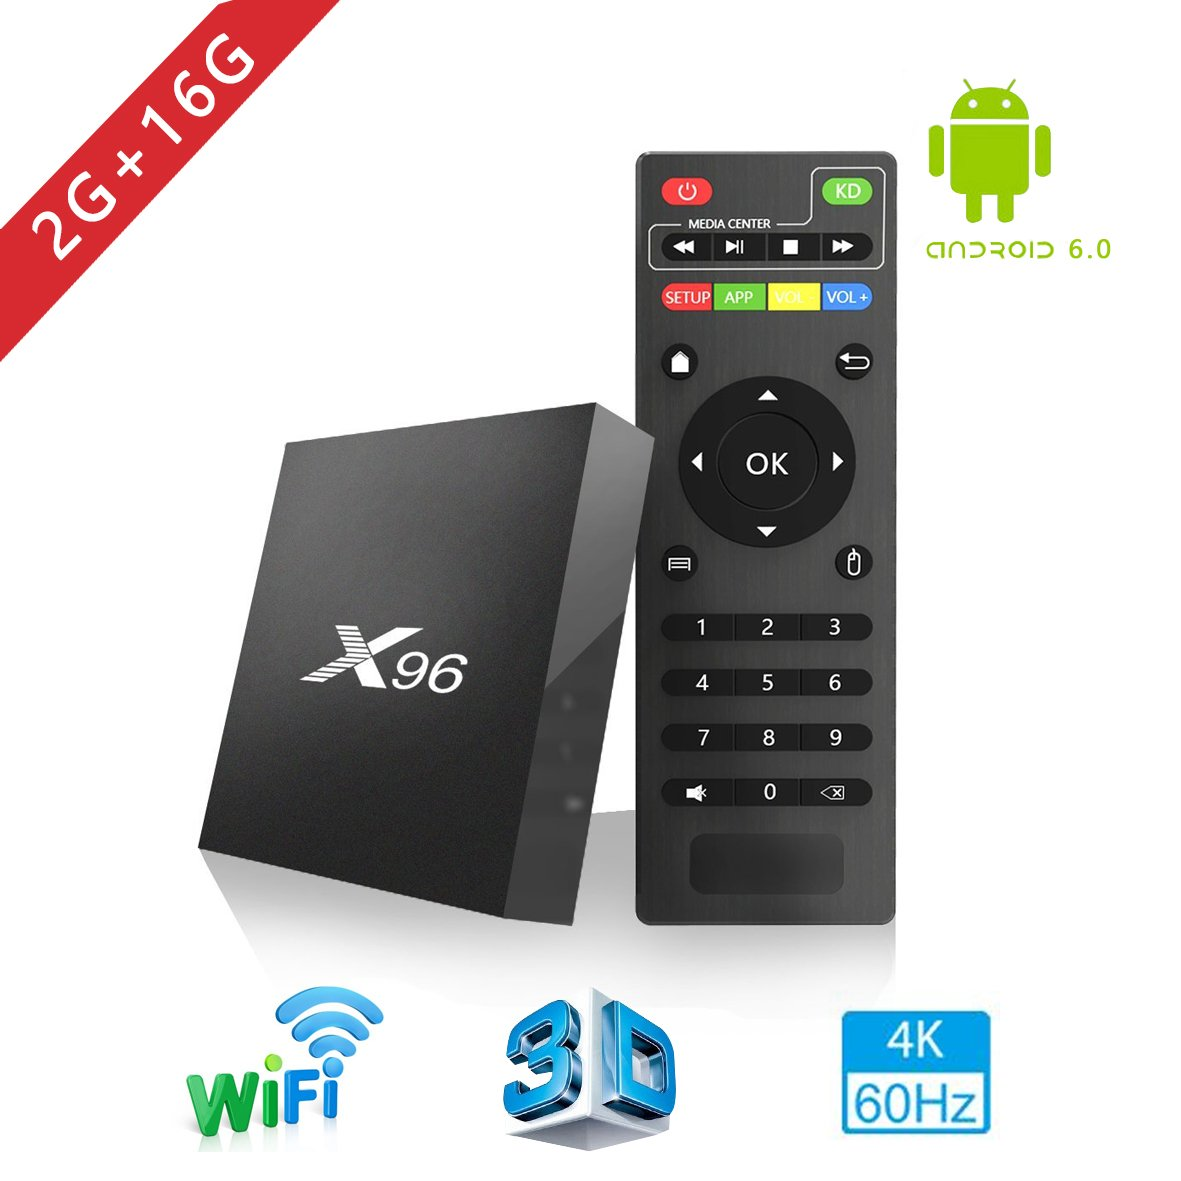 Aoxun 4K TV Box Android 6.0 WiFi 2G+16GB HDMI DLNA Smart TV Case H.265 WiFi 2.4Ghz X96 2017